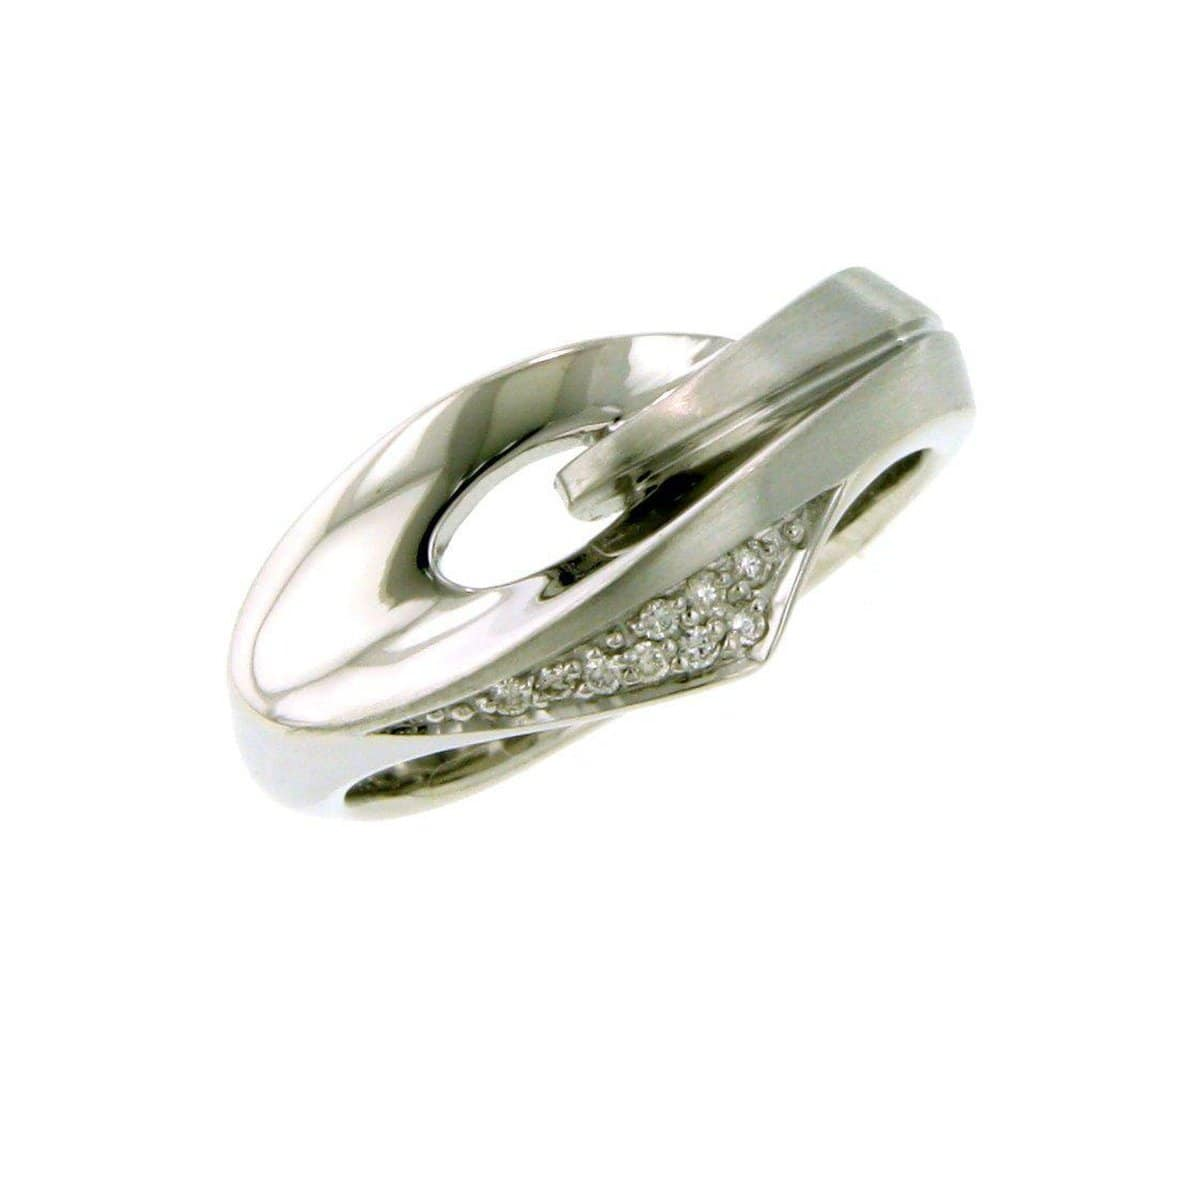 Sterling Silver Diamond Ring - 41/83721-Breuning-Renee Taylor Gallery